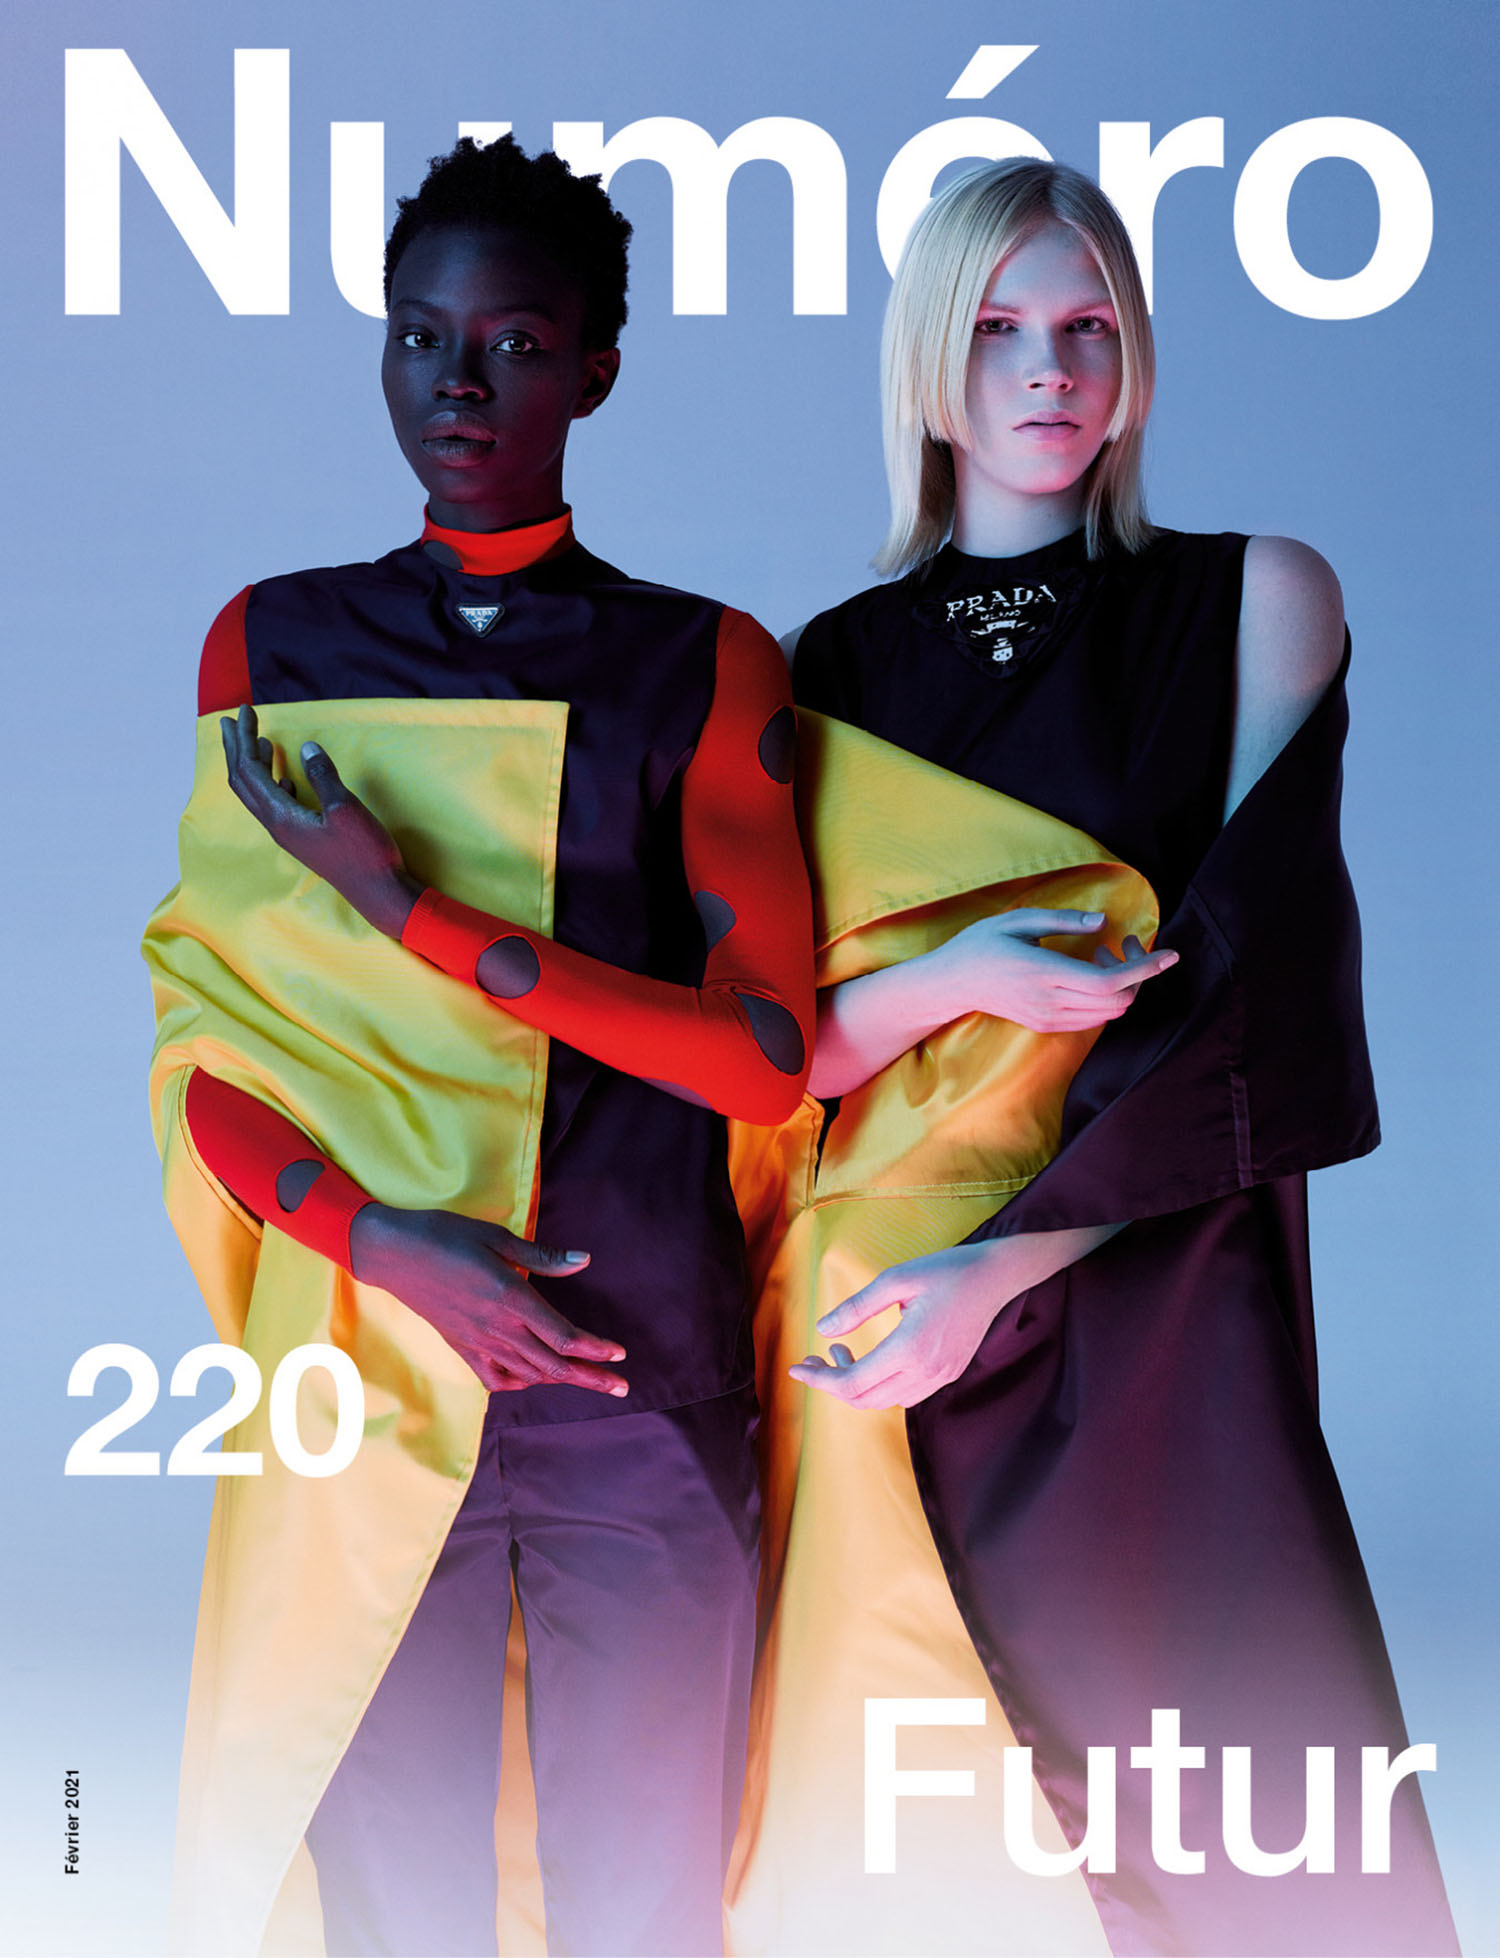 Lydia Kloos and Dija Kallon cover Numéro February 2021 by Jean-Baptiste Mondino